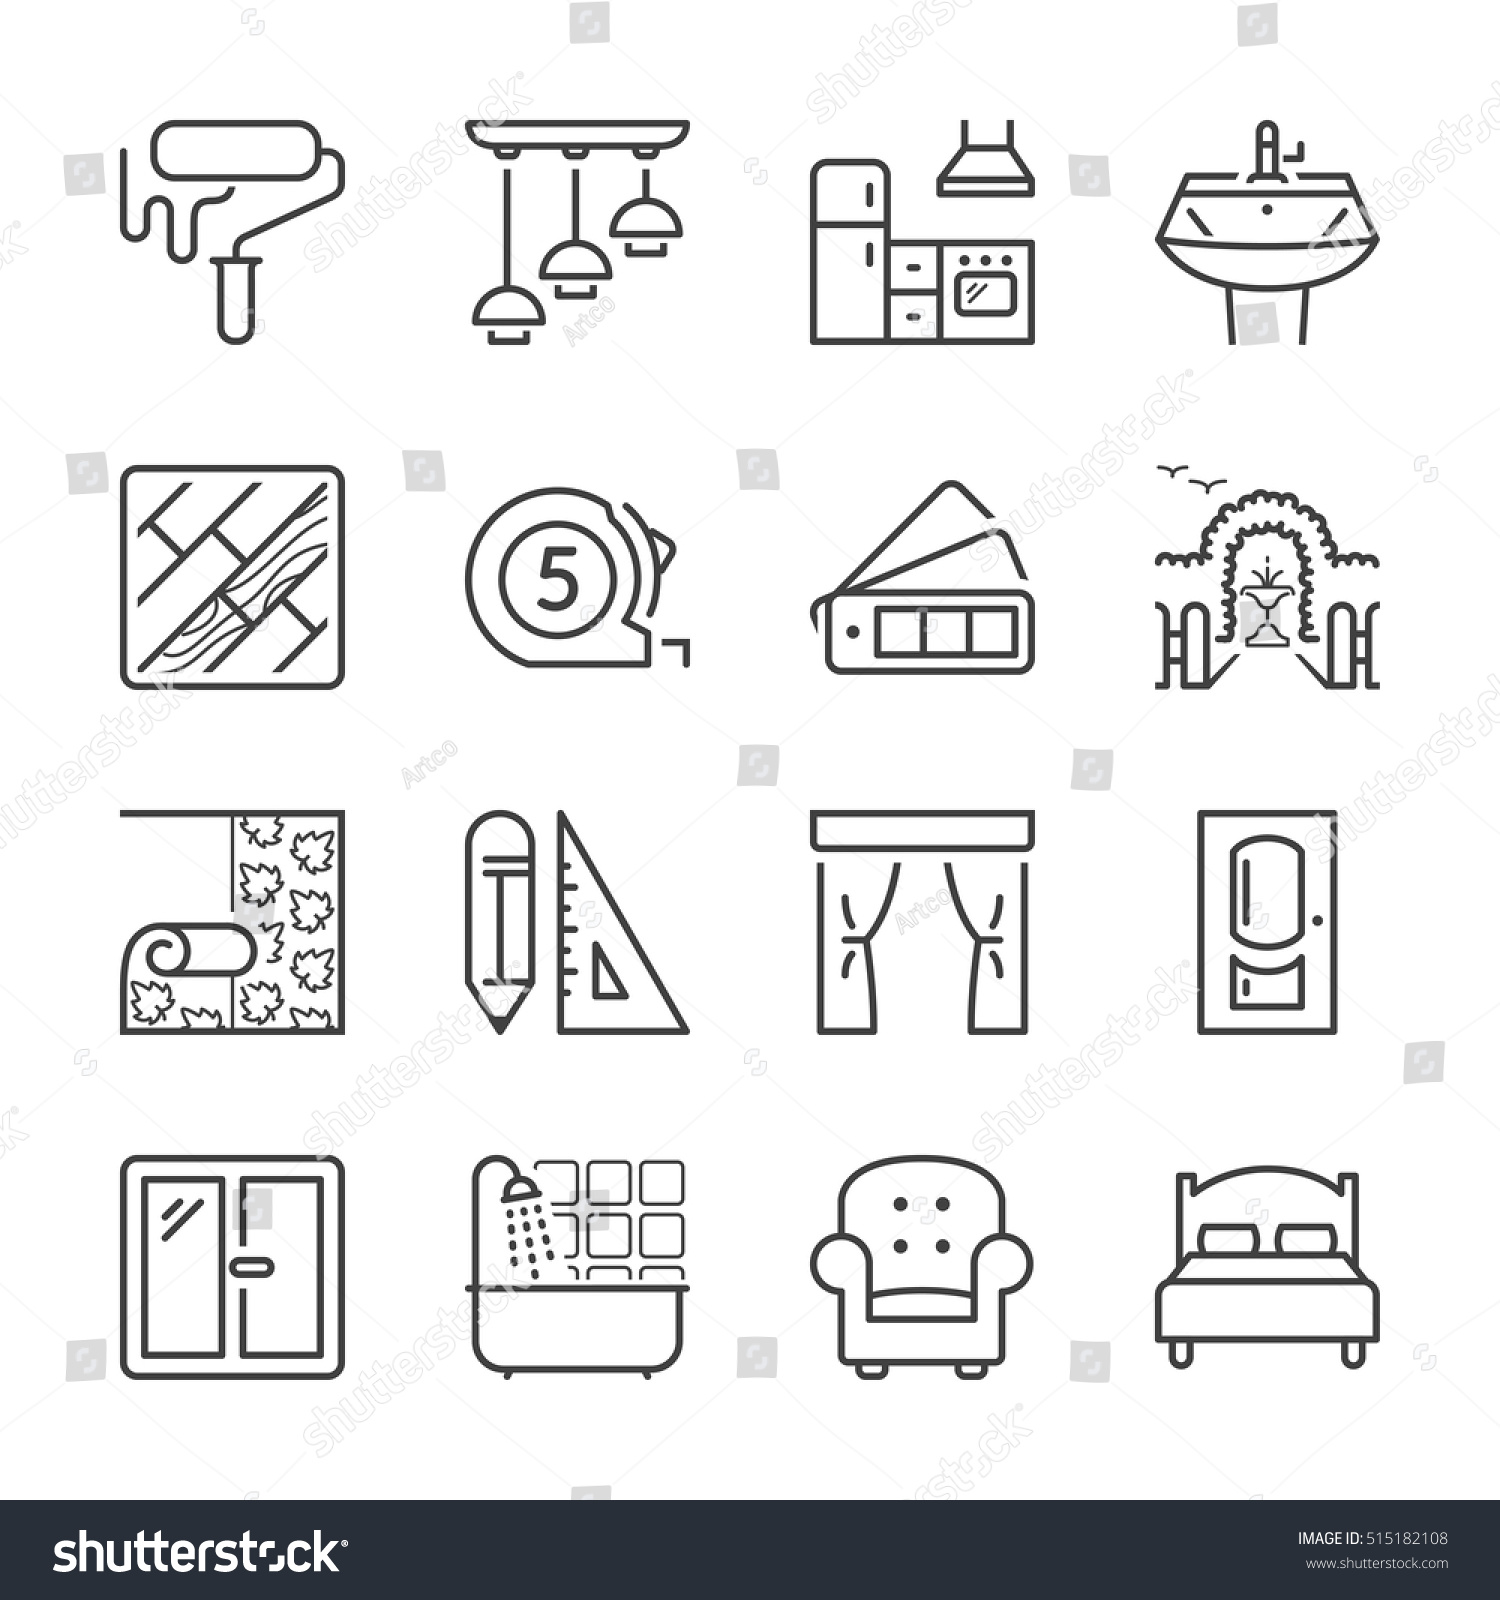 home decoration and furniture thin line icon set, black color, isolated